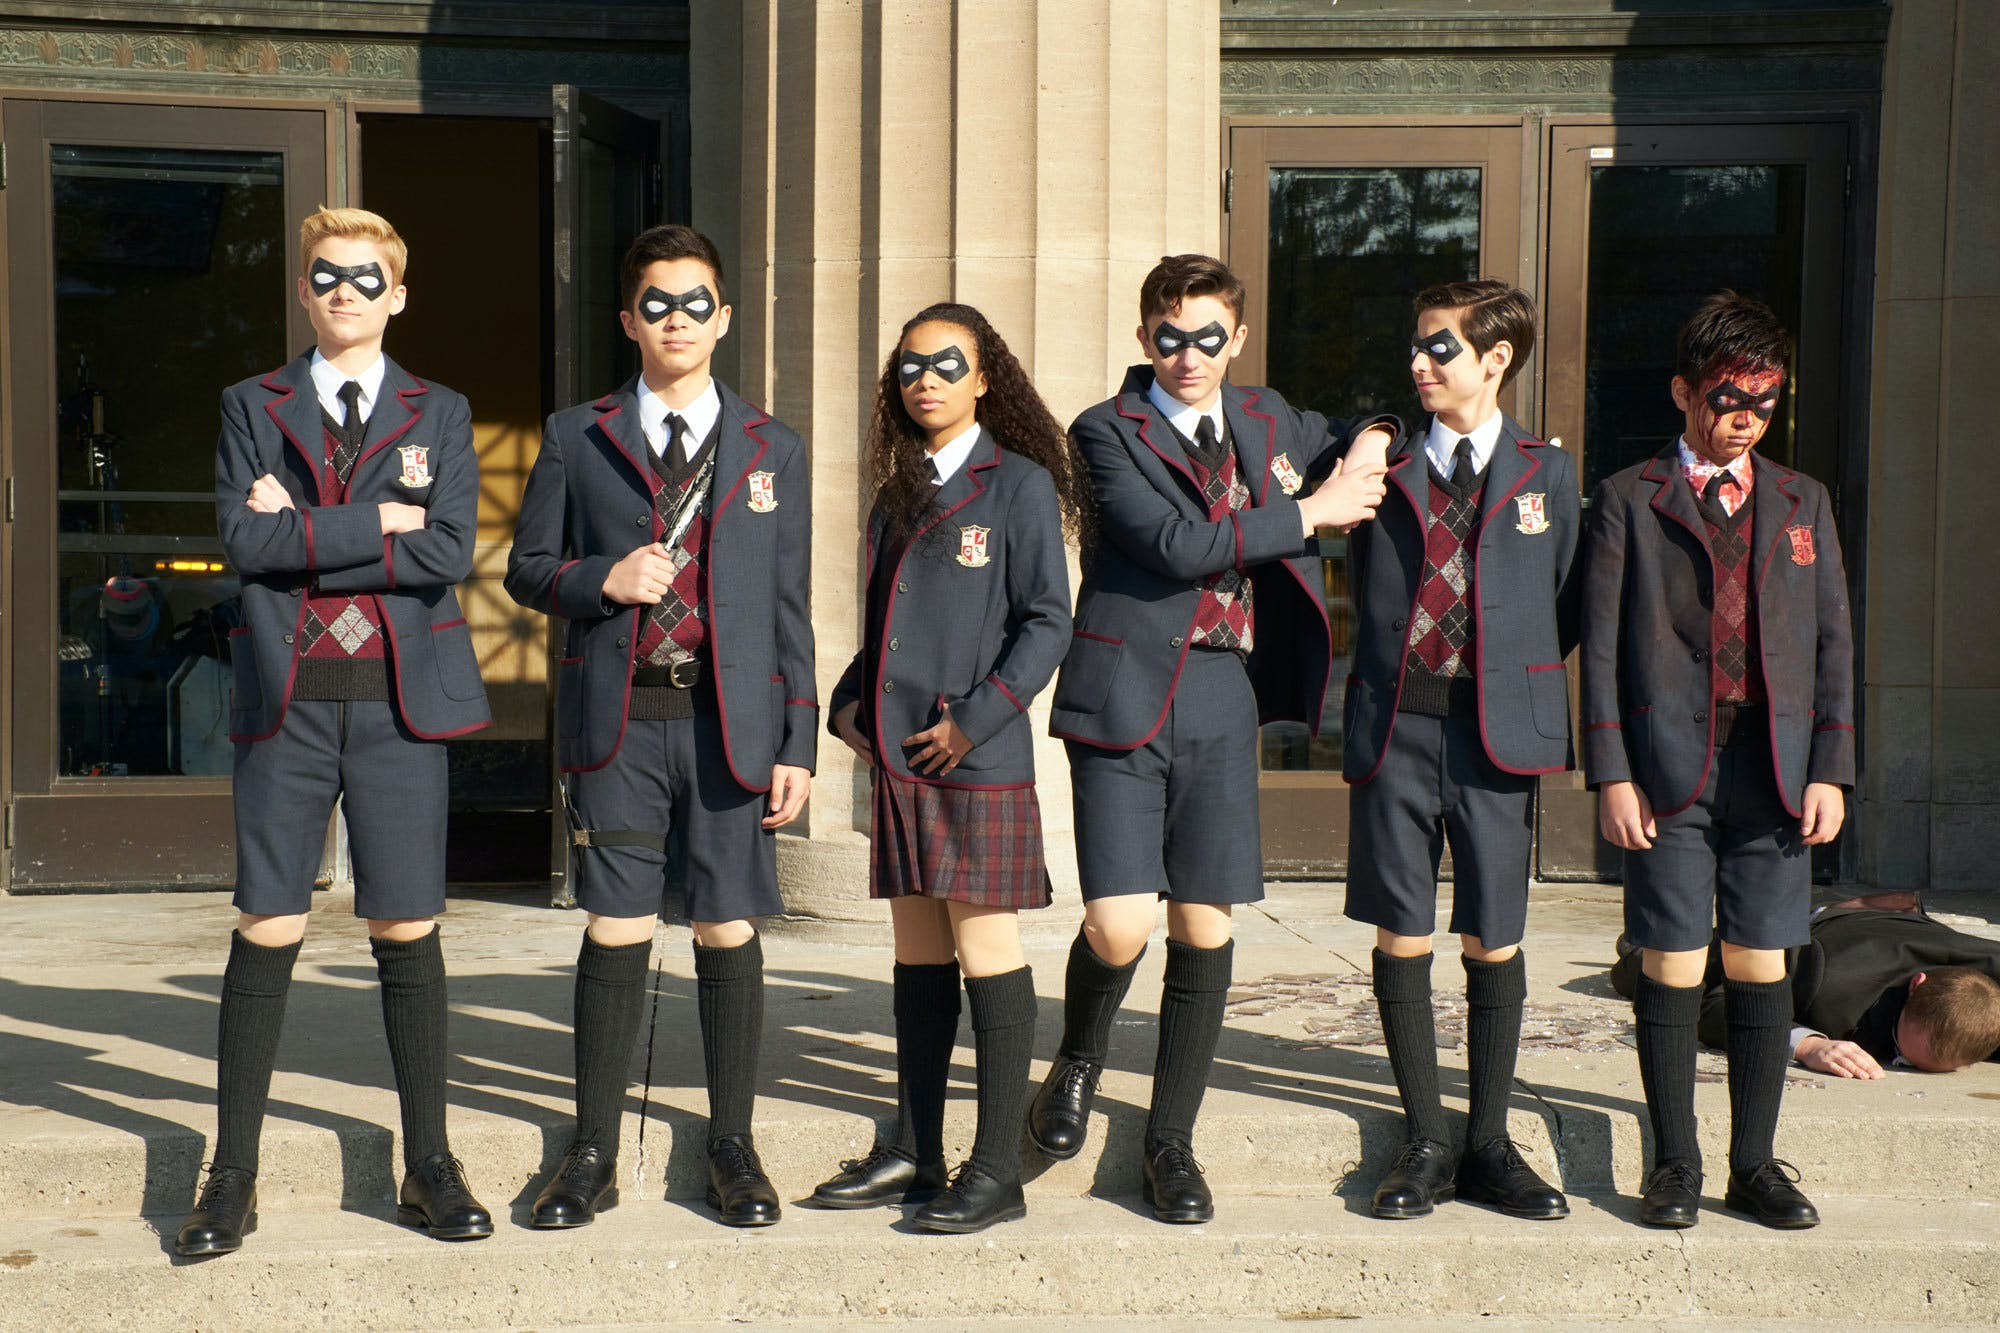 Netflix Confirm Second Season Of The Umbrella Academy